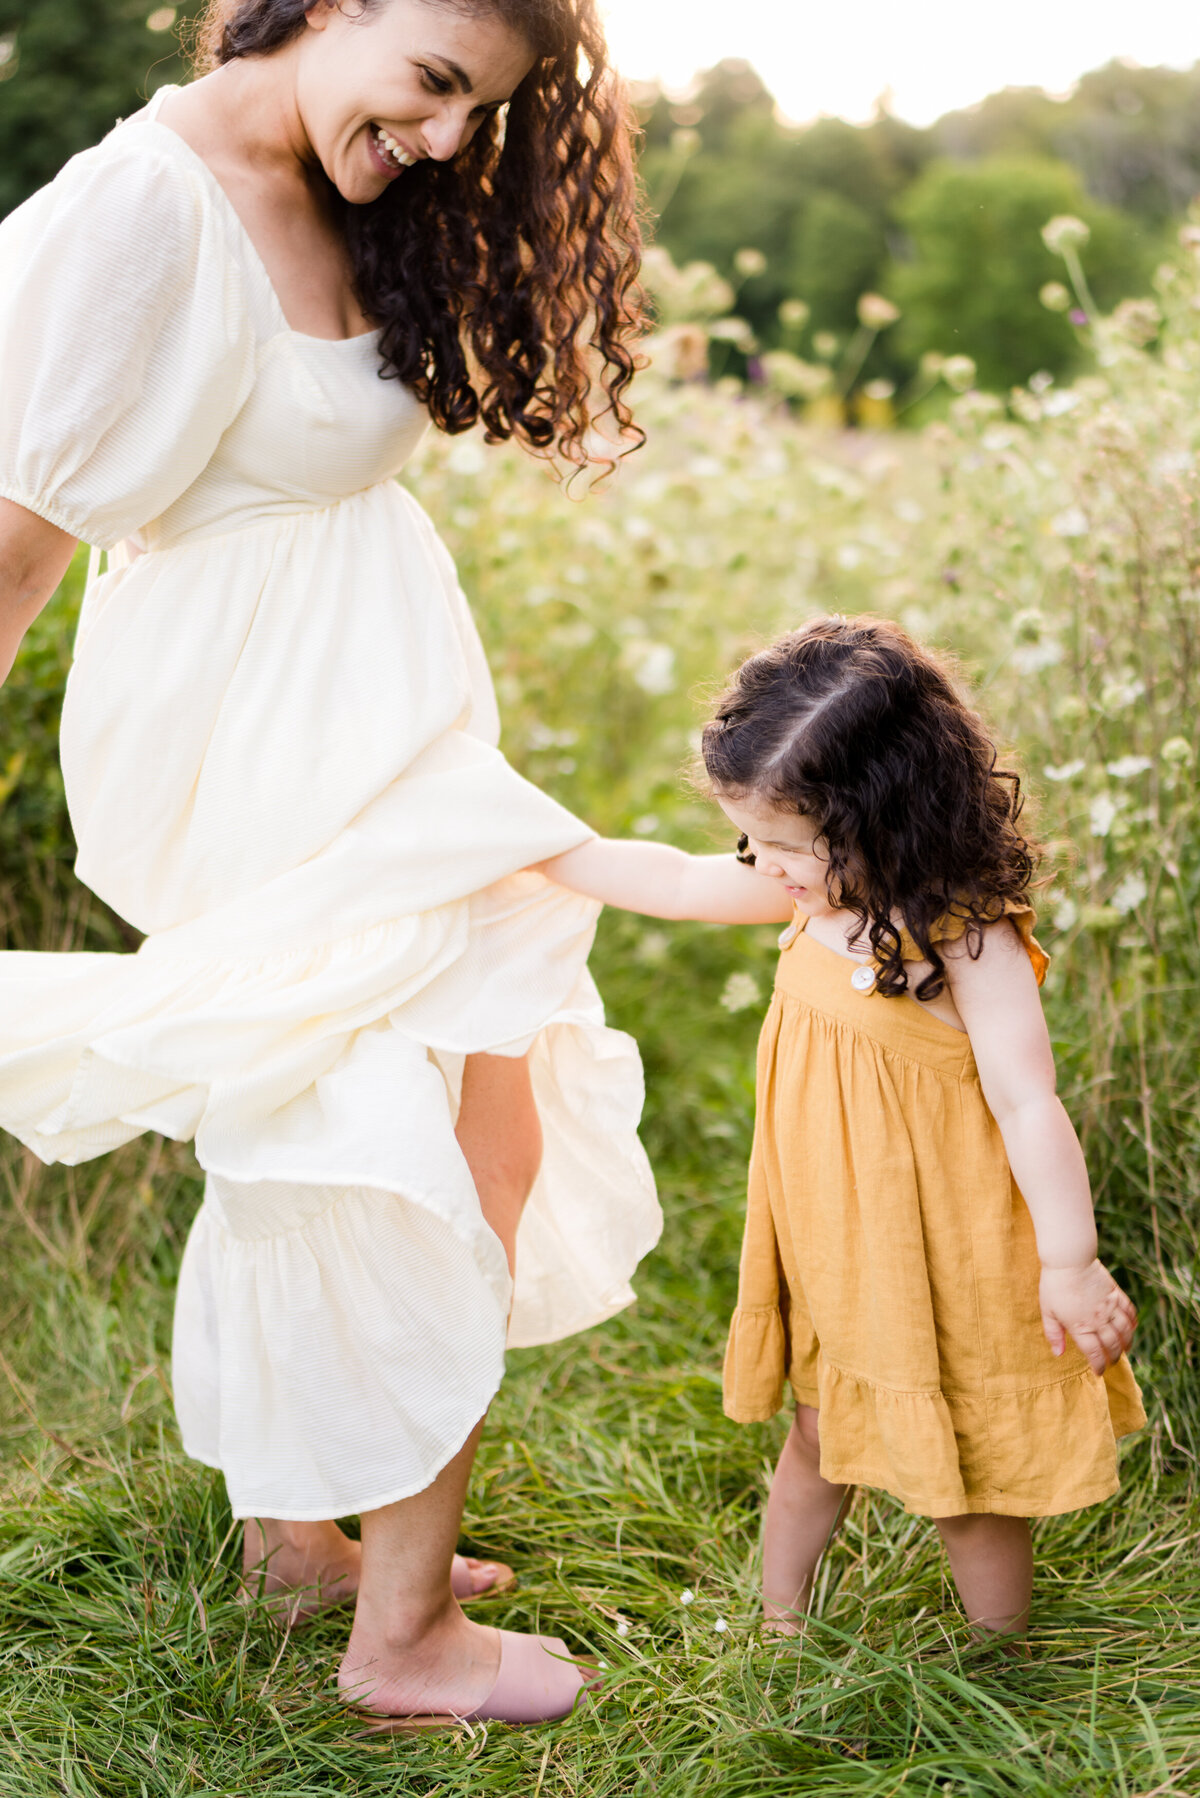 Boston-family-photographer-bella-wang-photography-Lifestyle-session-outdoor-wildflower-79